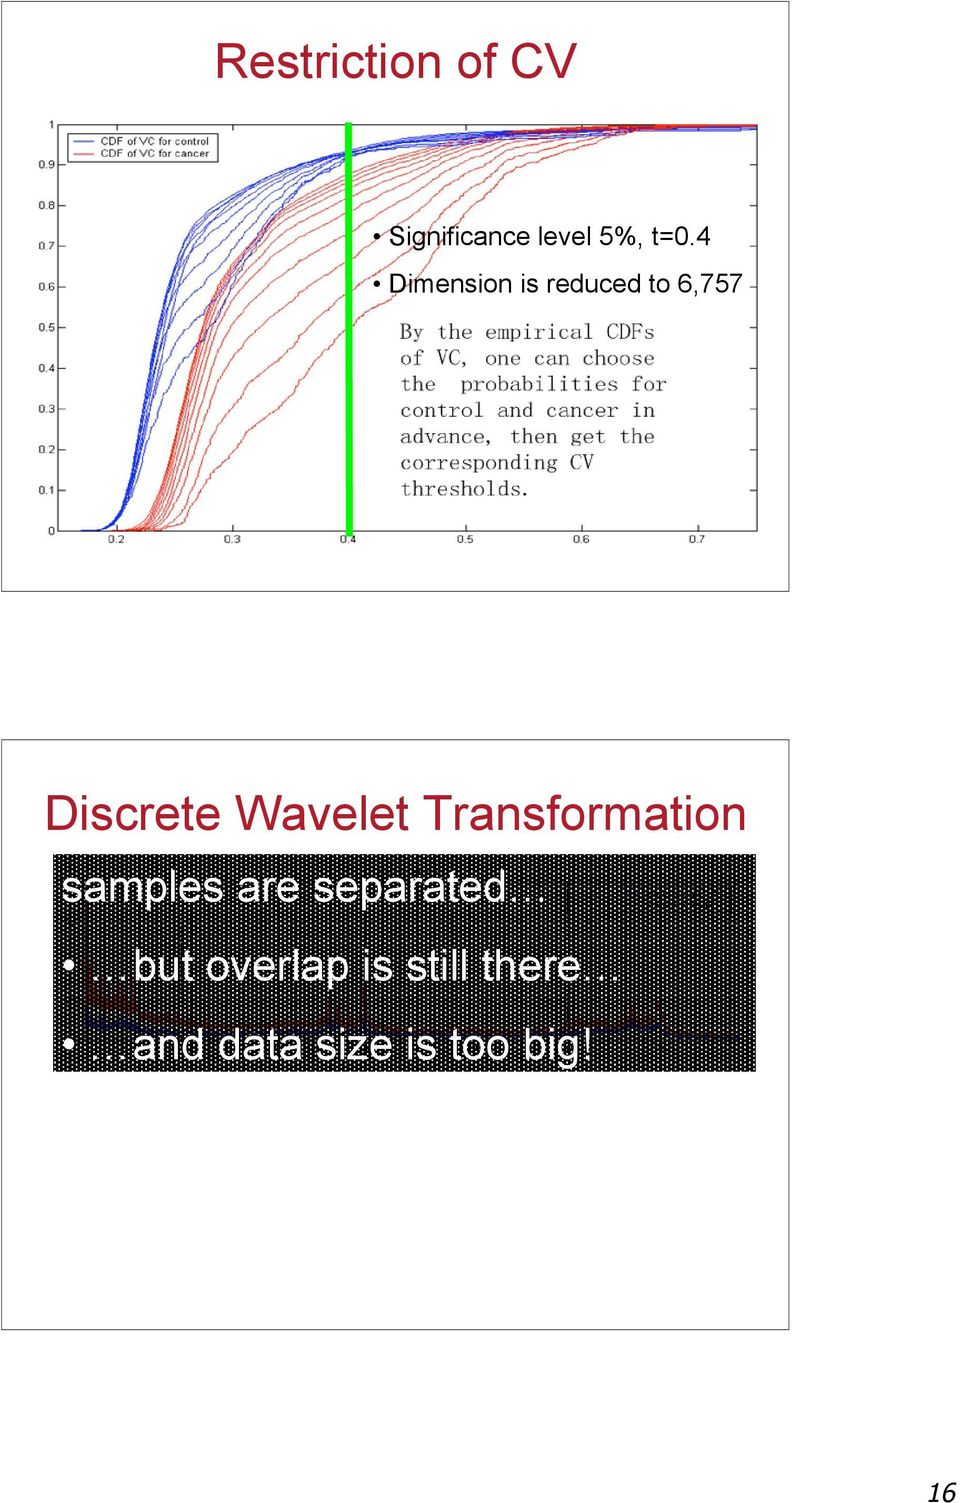 Wavelet Transformation samples are separated